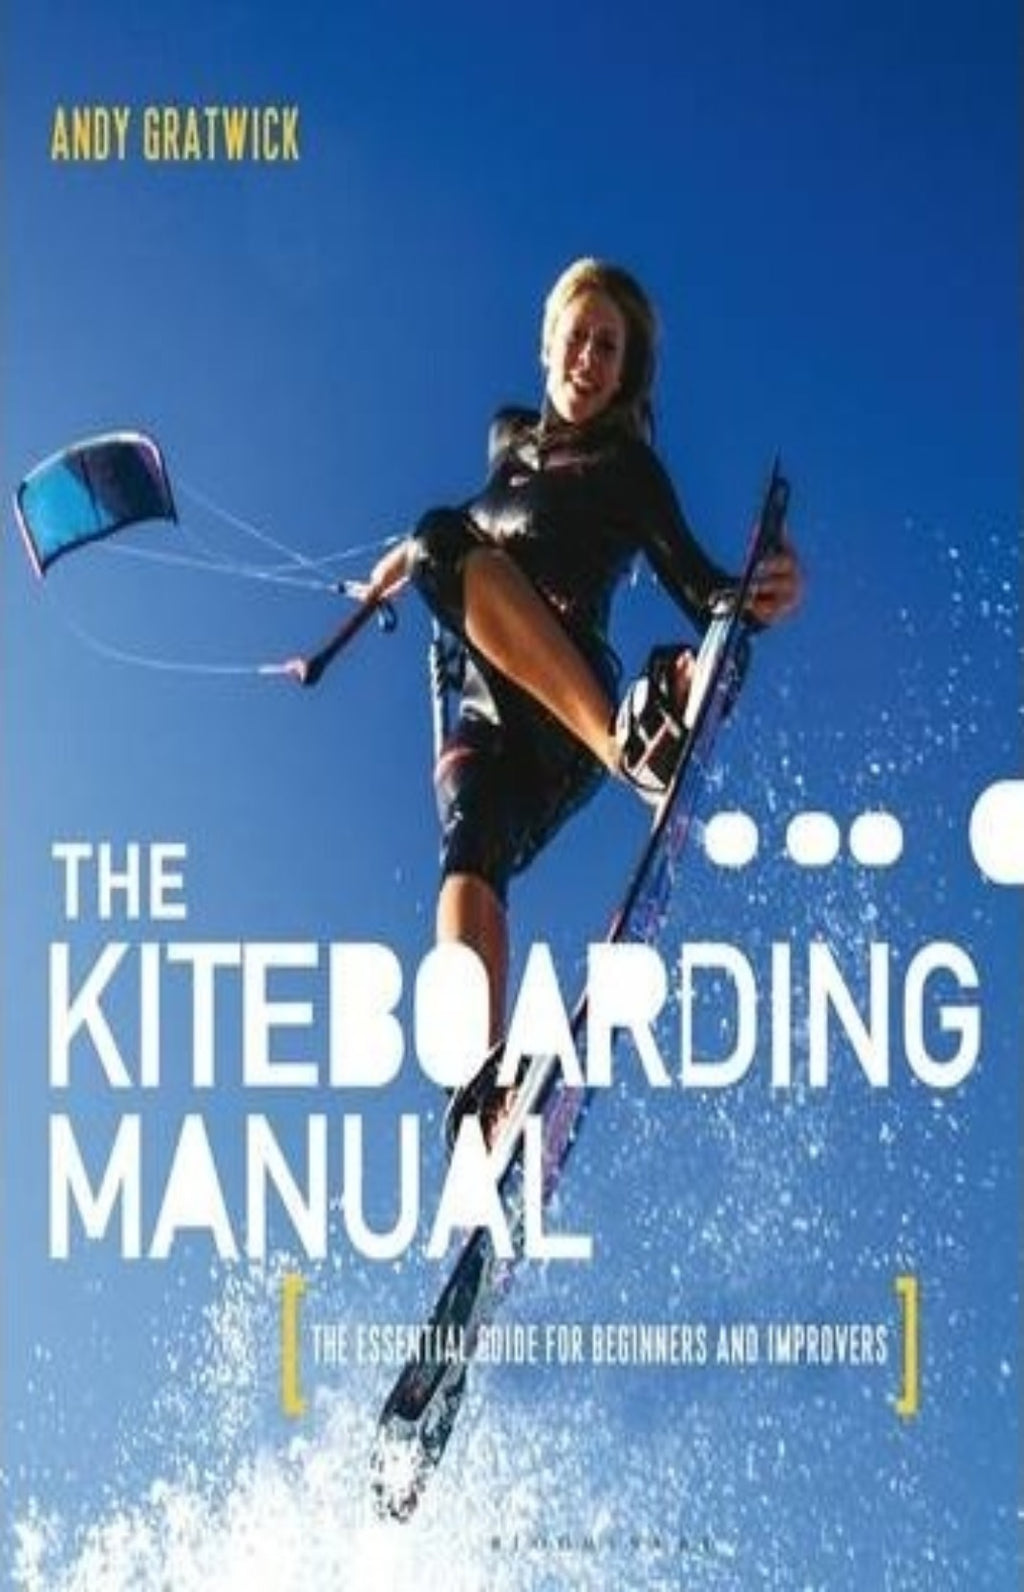 The Kiteboarding Manual